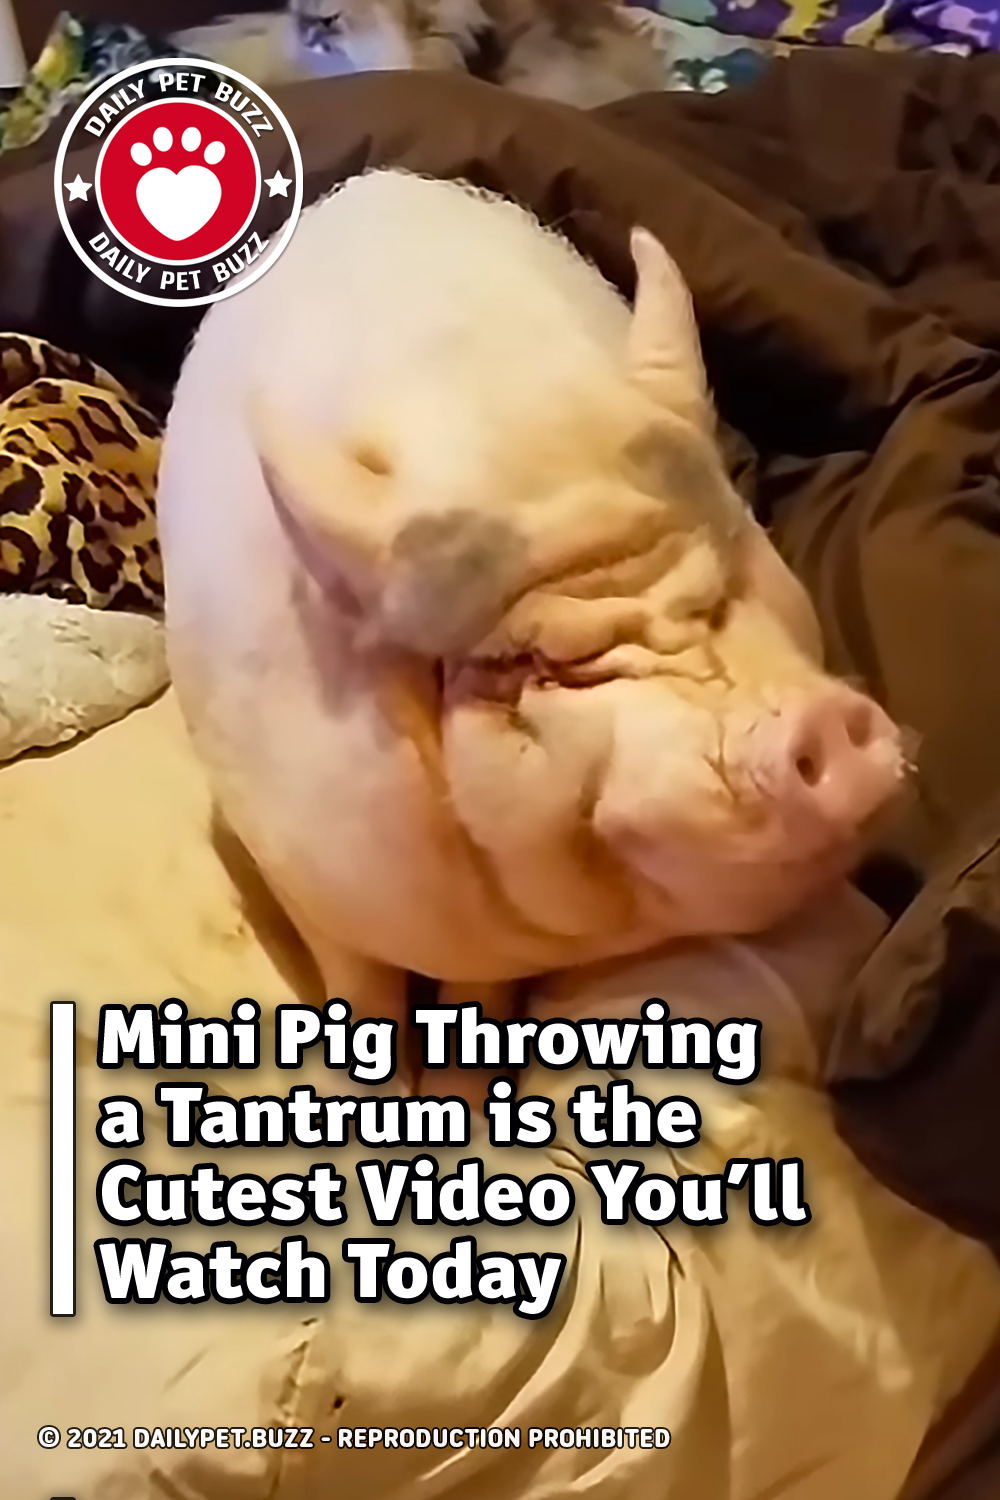 Mini Pig Throwing a Tantrum is the Cutest Video You\'ll Watch Today